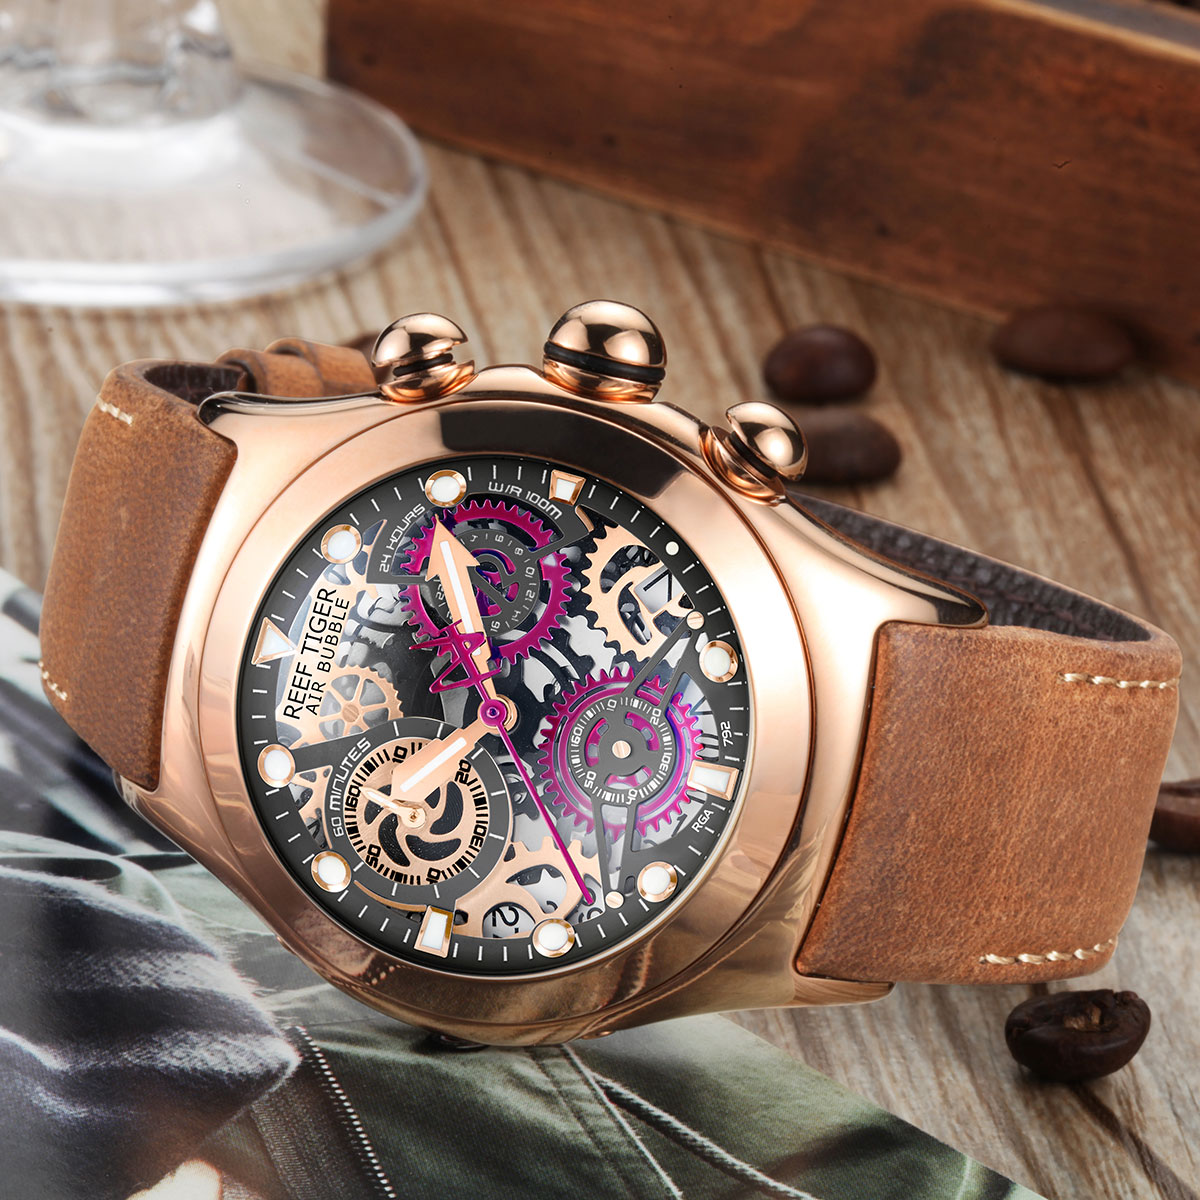 Reef Tiger Sport Casual Watches Chronograph Watch Rose Gold Case Skeleton Dial RGA792-PBBR